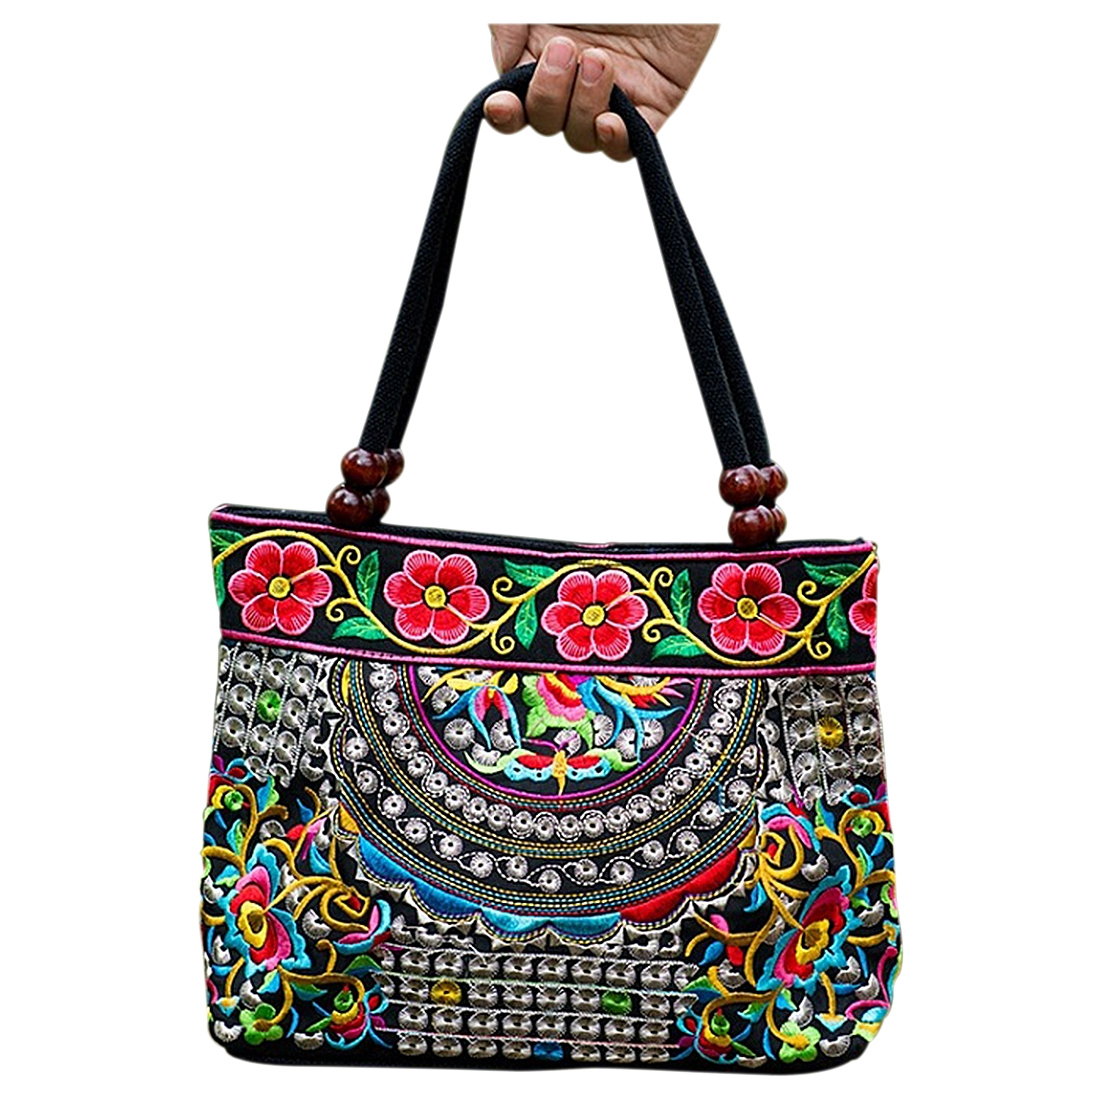 Chinese Style Women Handbag Embroidery Ethnic Summer Fashion Handmade Flowers Ladies Tote Shoulder Bags Cross-body Chinese Style Women Handbag Embroidery Ethnic Summer Fashion Handmade Flowers Ladies Tote Shoulder Bags Cross-body